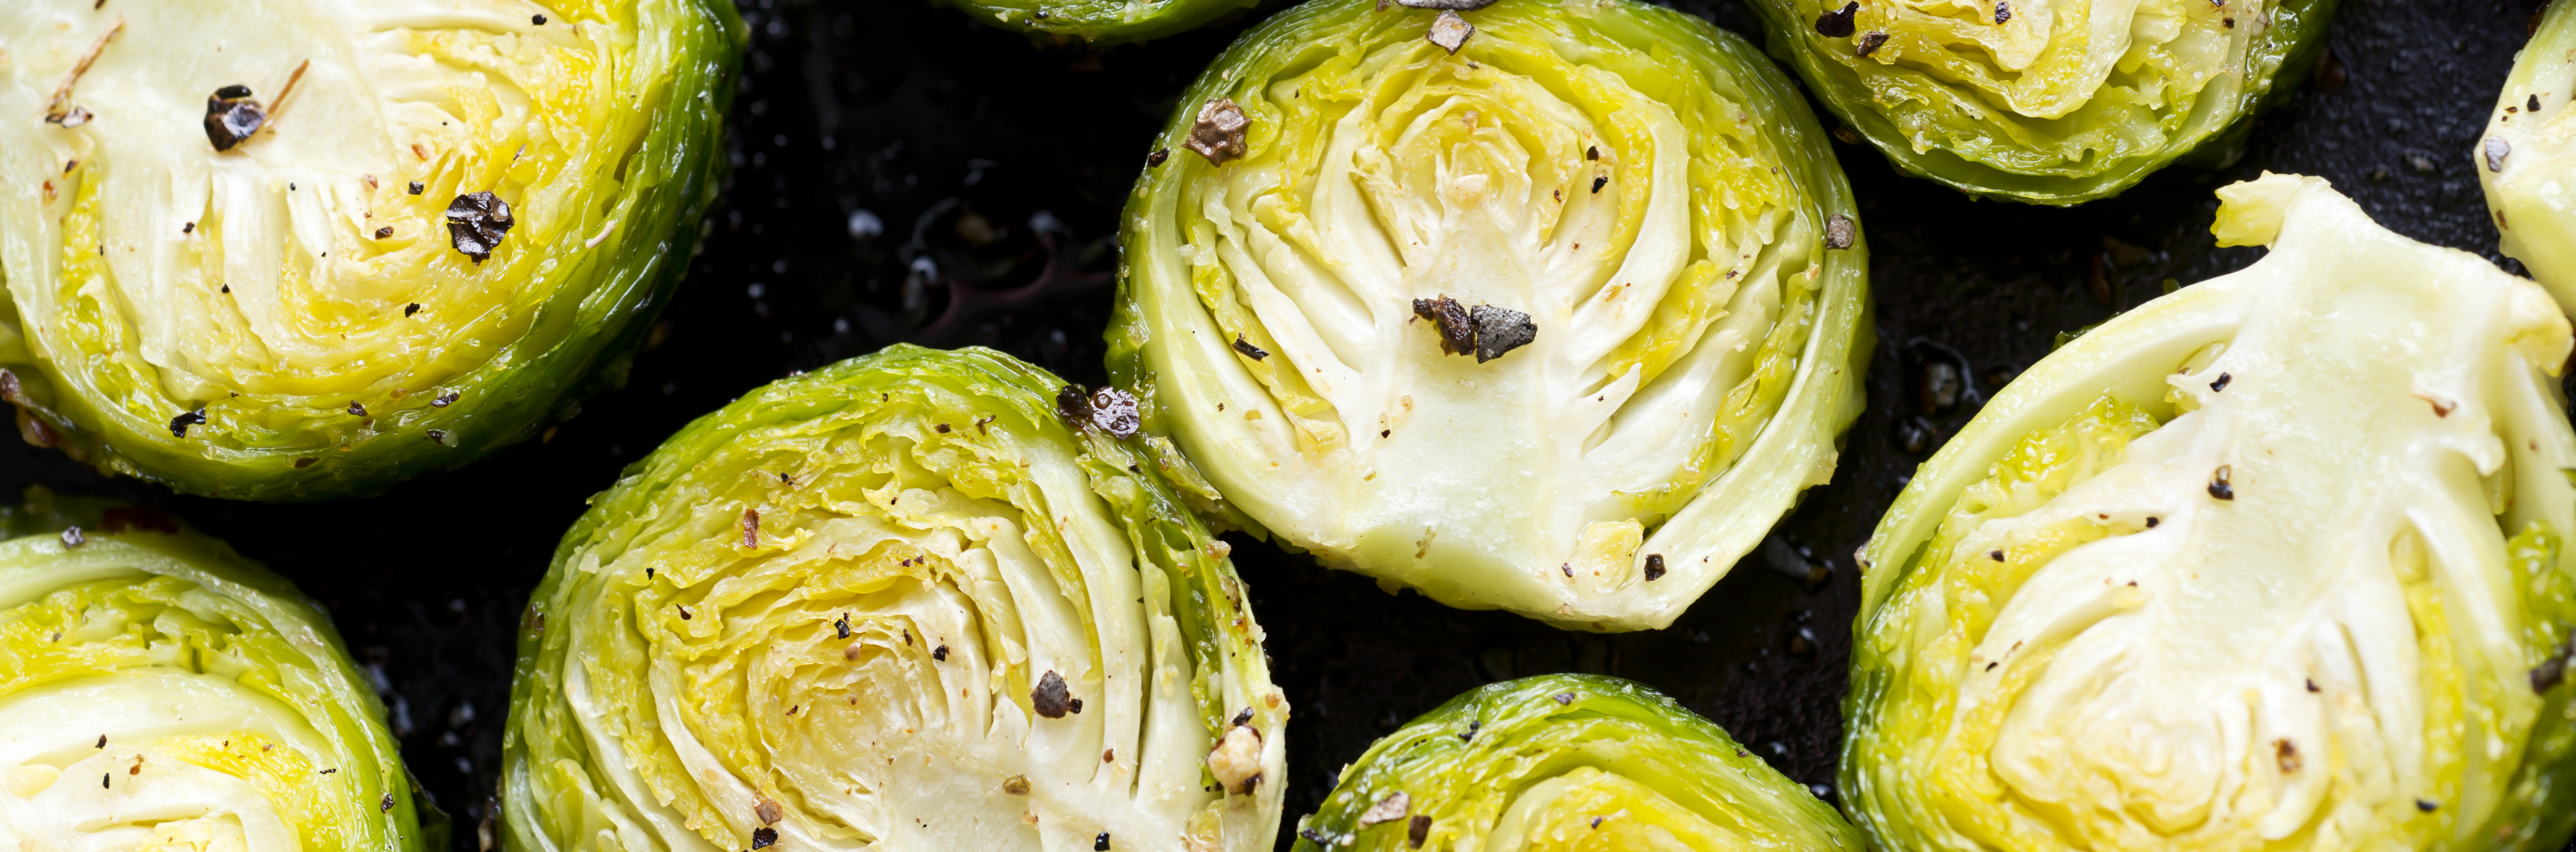 12267-6-HealthyHoliday-BrusselsSprouts-1242x411.jpg